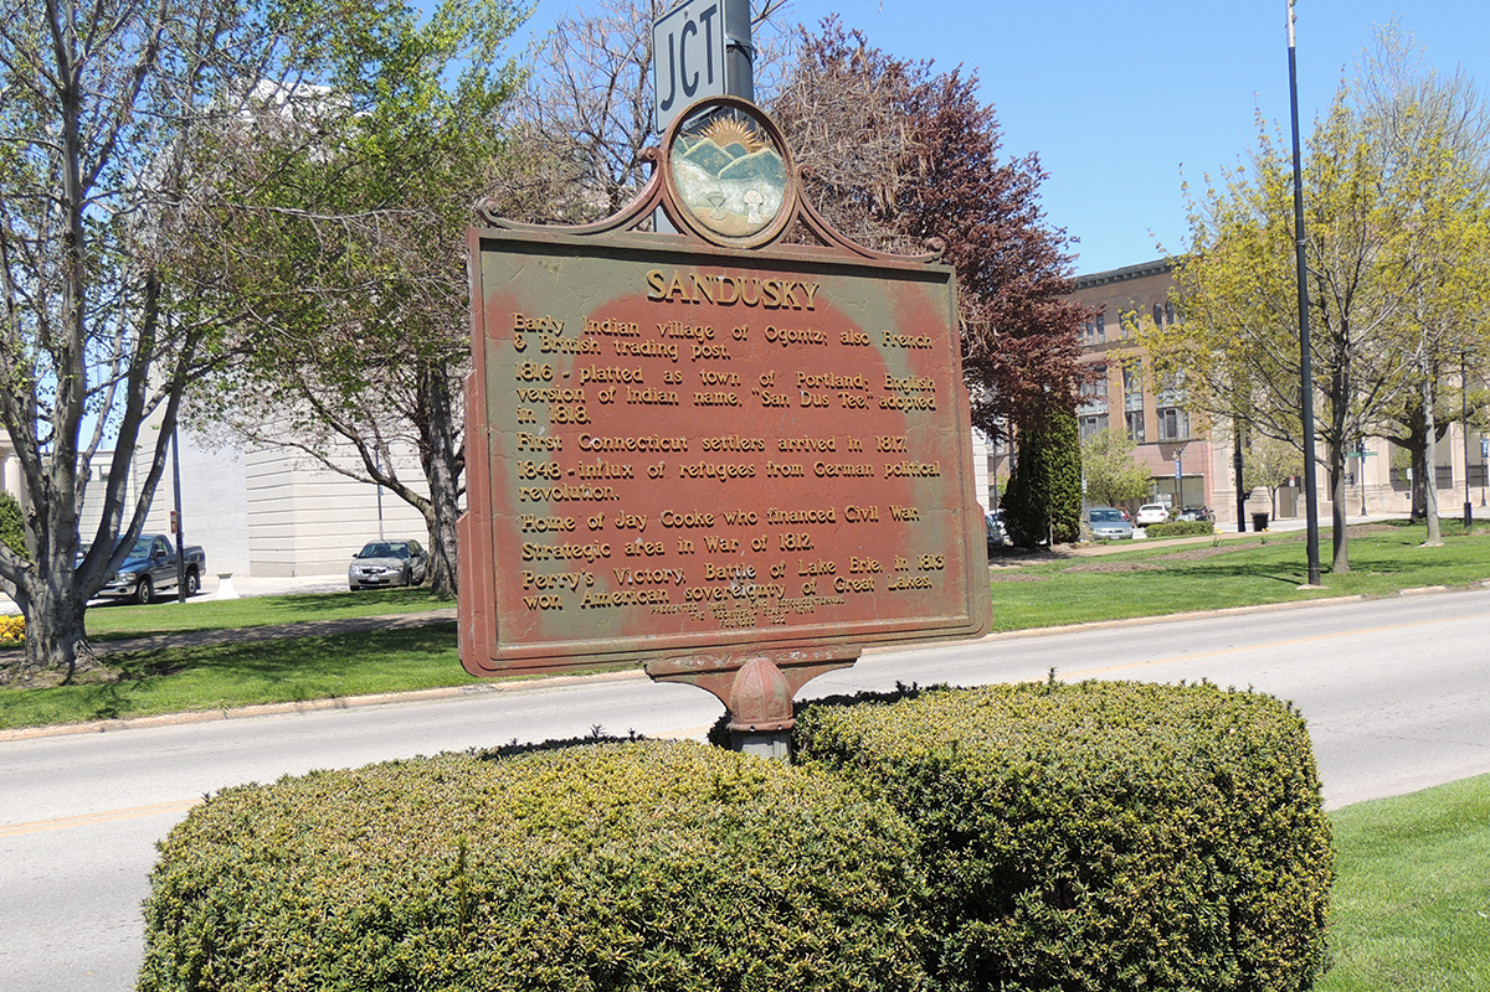 Sandusky Marker - Erie County Ohio Historical Society